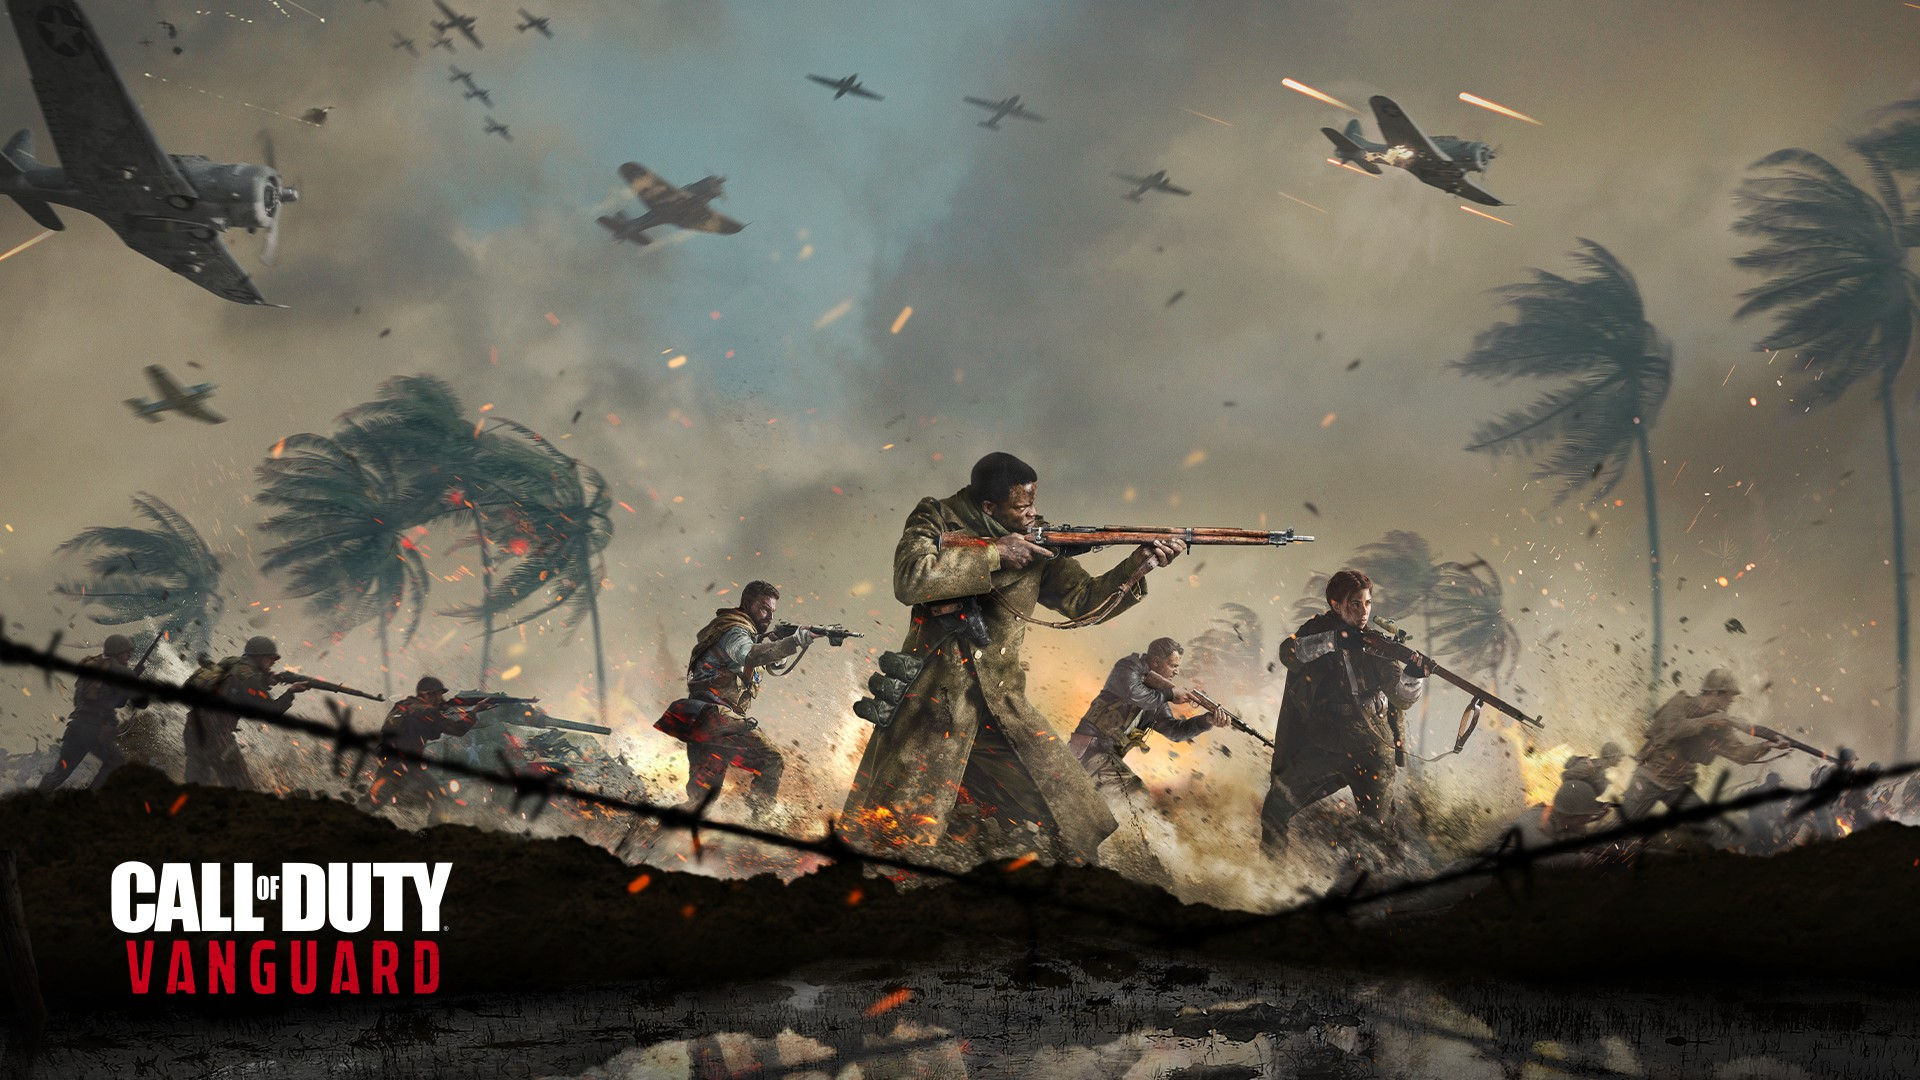 Video For Call of Duty: Vanguard Launches November 5 for Xbox One and Xbox Series X|S